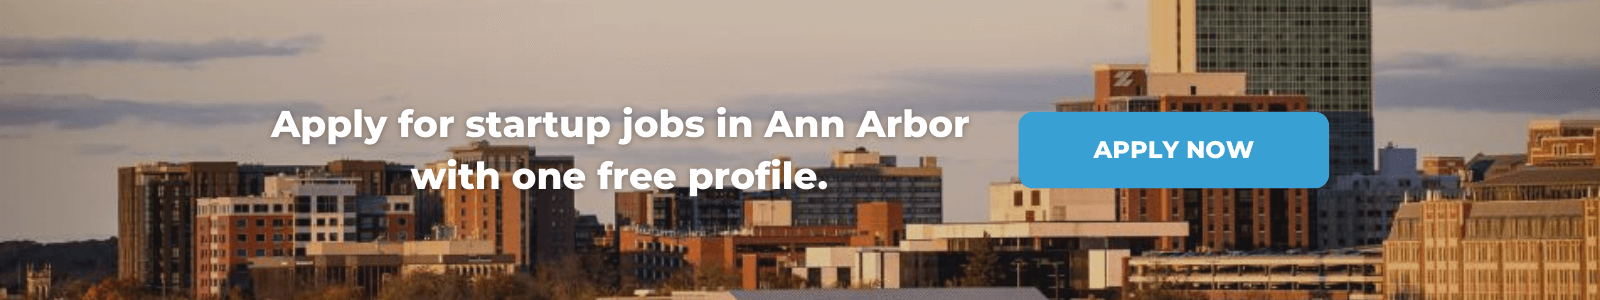 ann arbor tech jobs